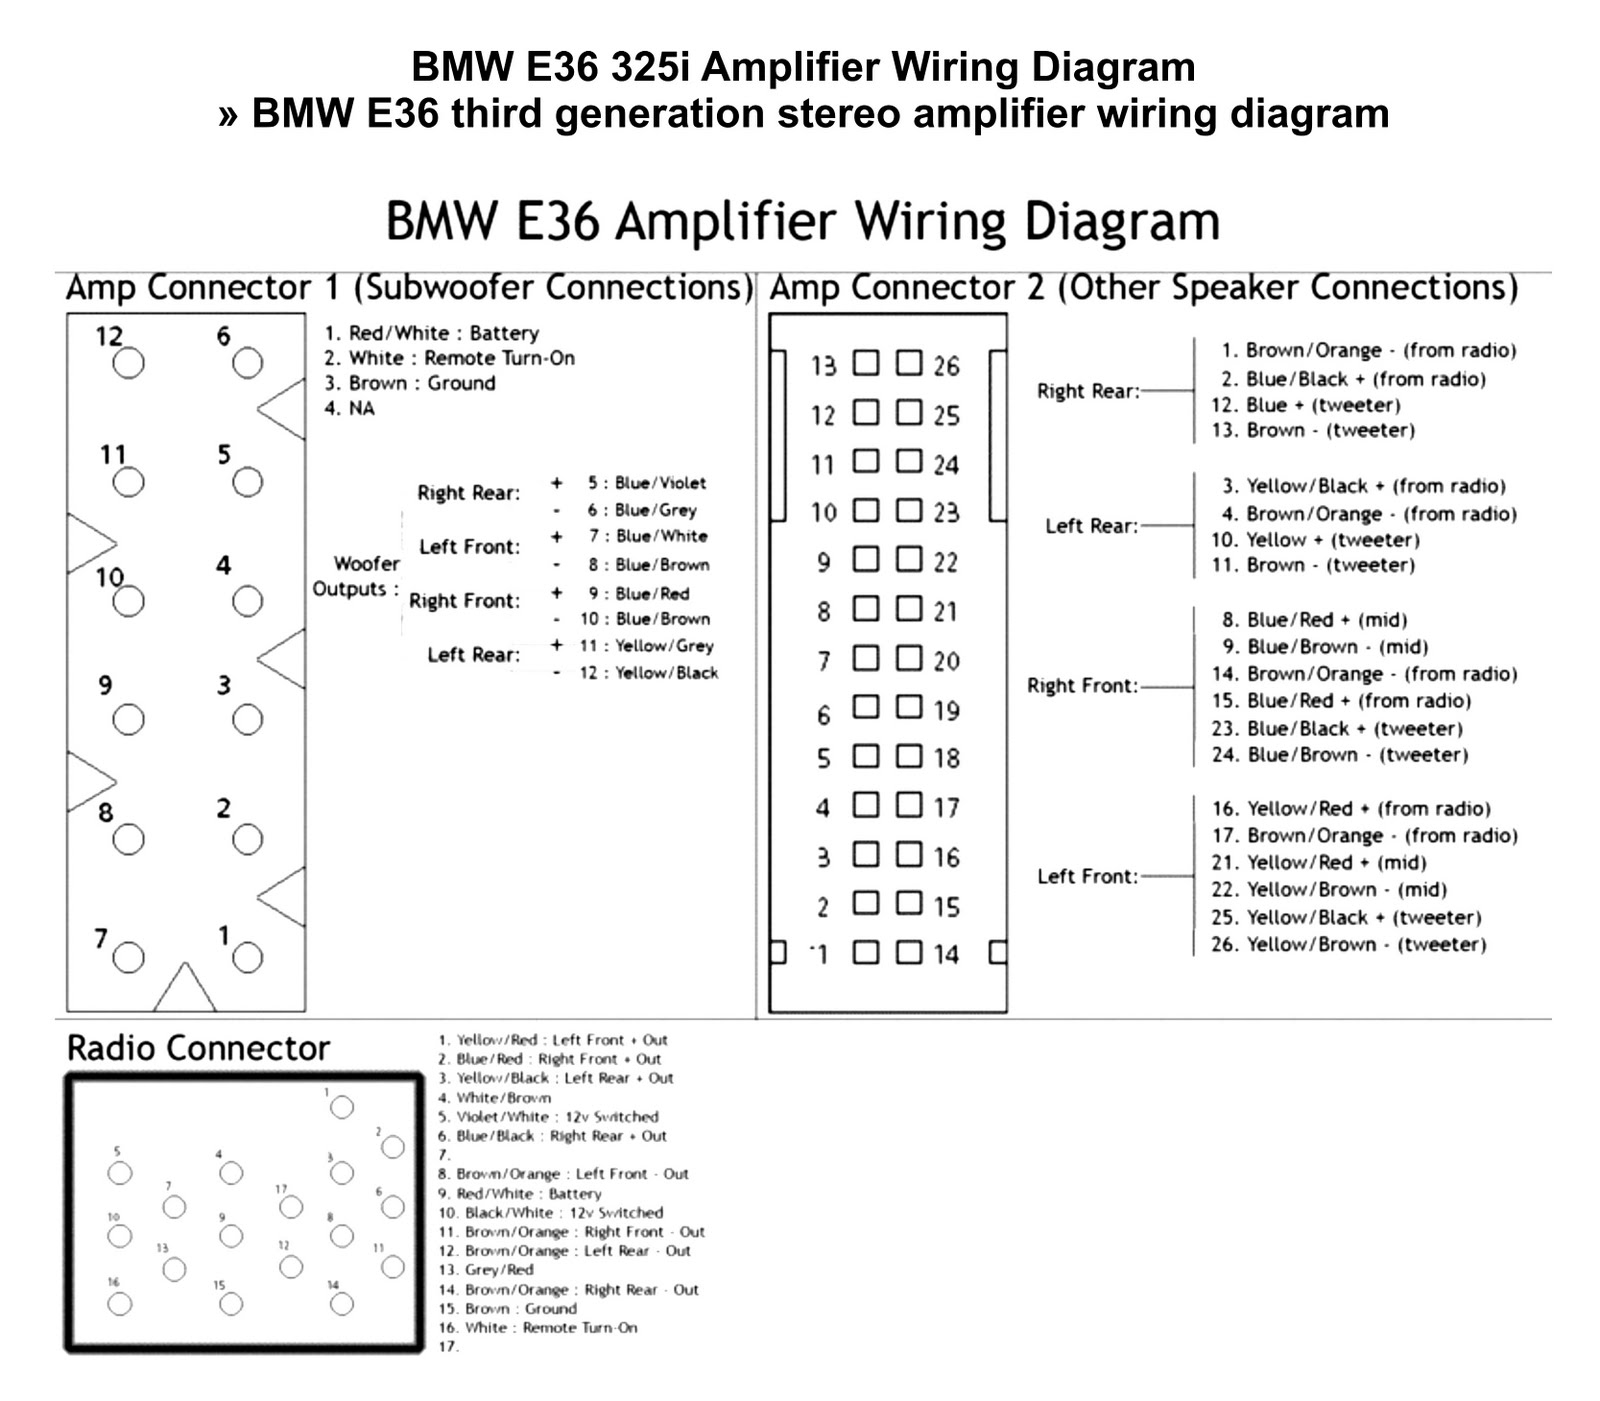 Bmw e46 fuse box head wiring diagram database fascinating bmw e46 fuse box under hood gallery best image wire bmw e30 m3 fuse box bmw e46 fuse box head cheapraybanclubmaster Images